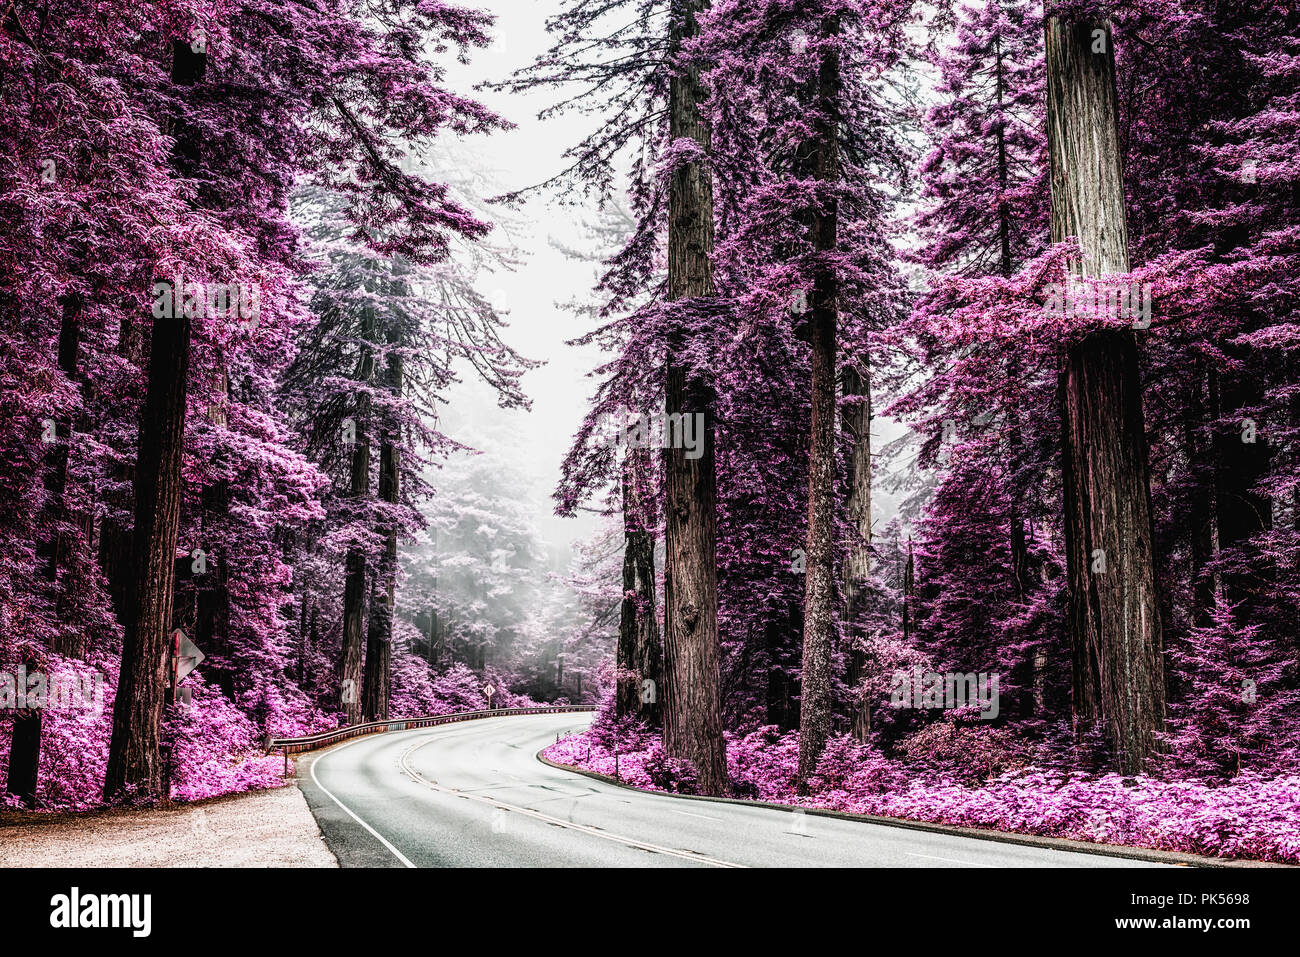 U.S. Route (Highway) 101 running through the Redwood National and State Parks in Northern California, USA. Processed with an infrared effect. Stock Photo